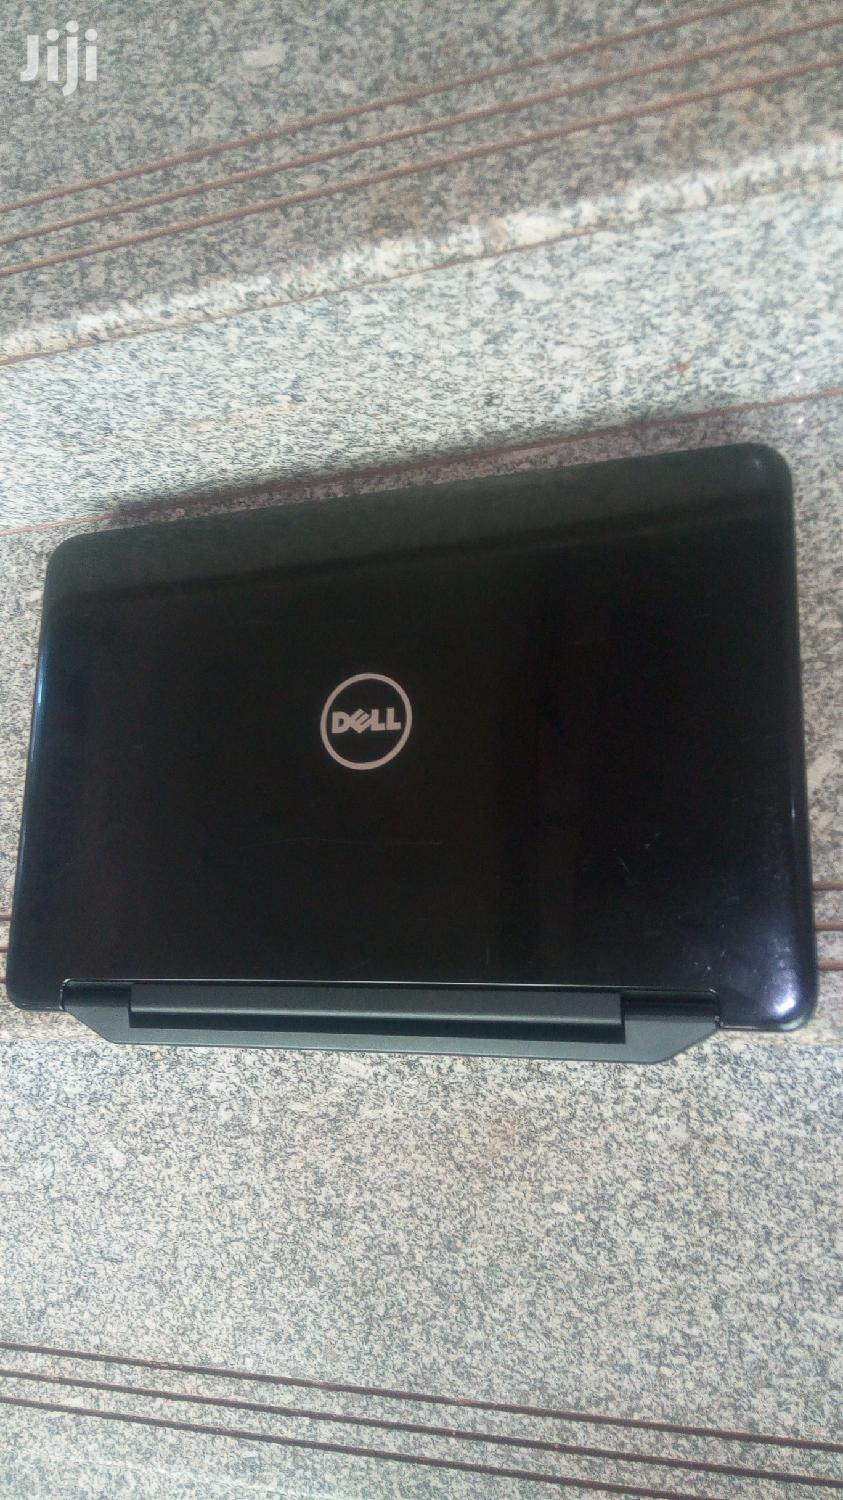 Cheap Dell Laptop G3 15 3579 320GB HDD Intel Core M | Laptops & Computers for sale in Kampala, Central Region, Uganda